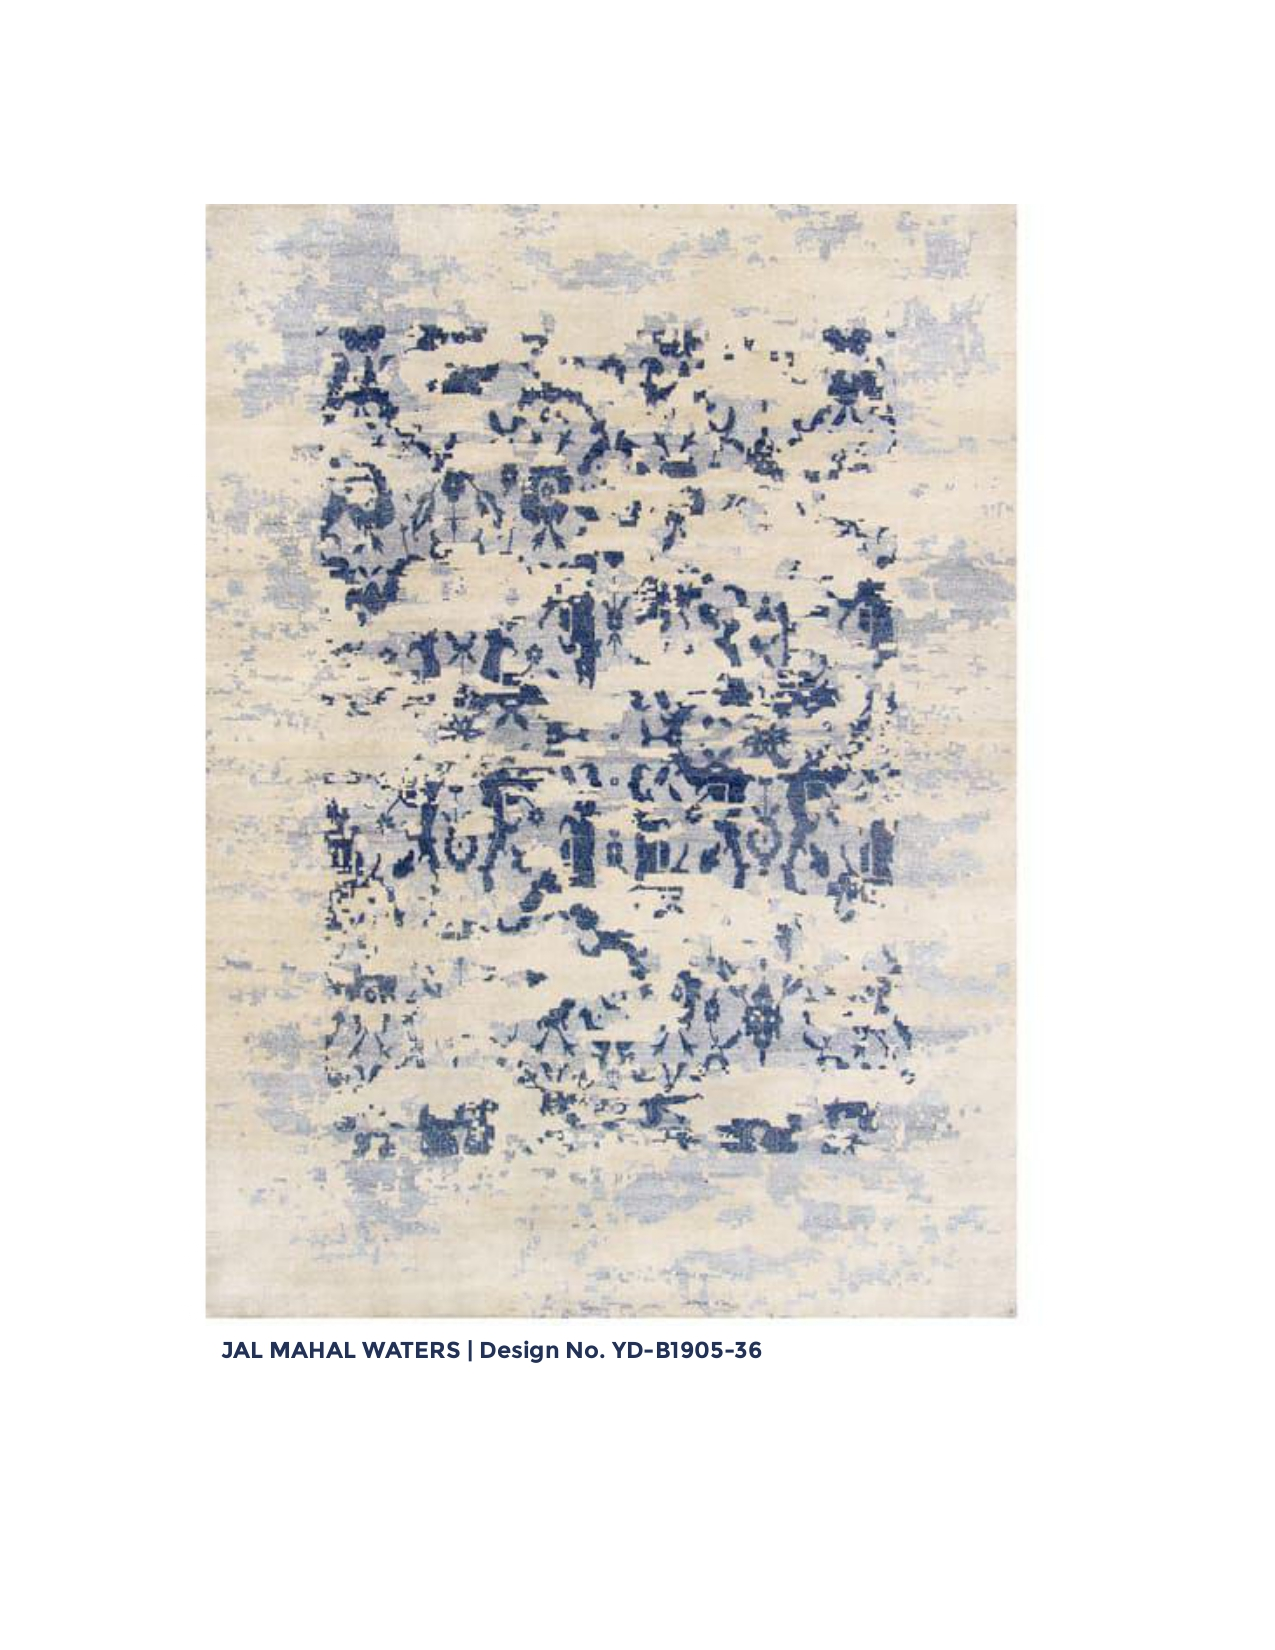 Hand_Knotted_CC_1905_40.jpg